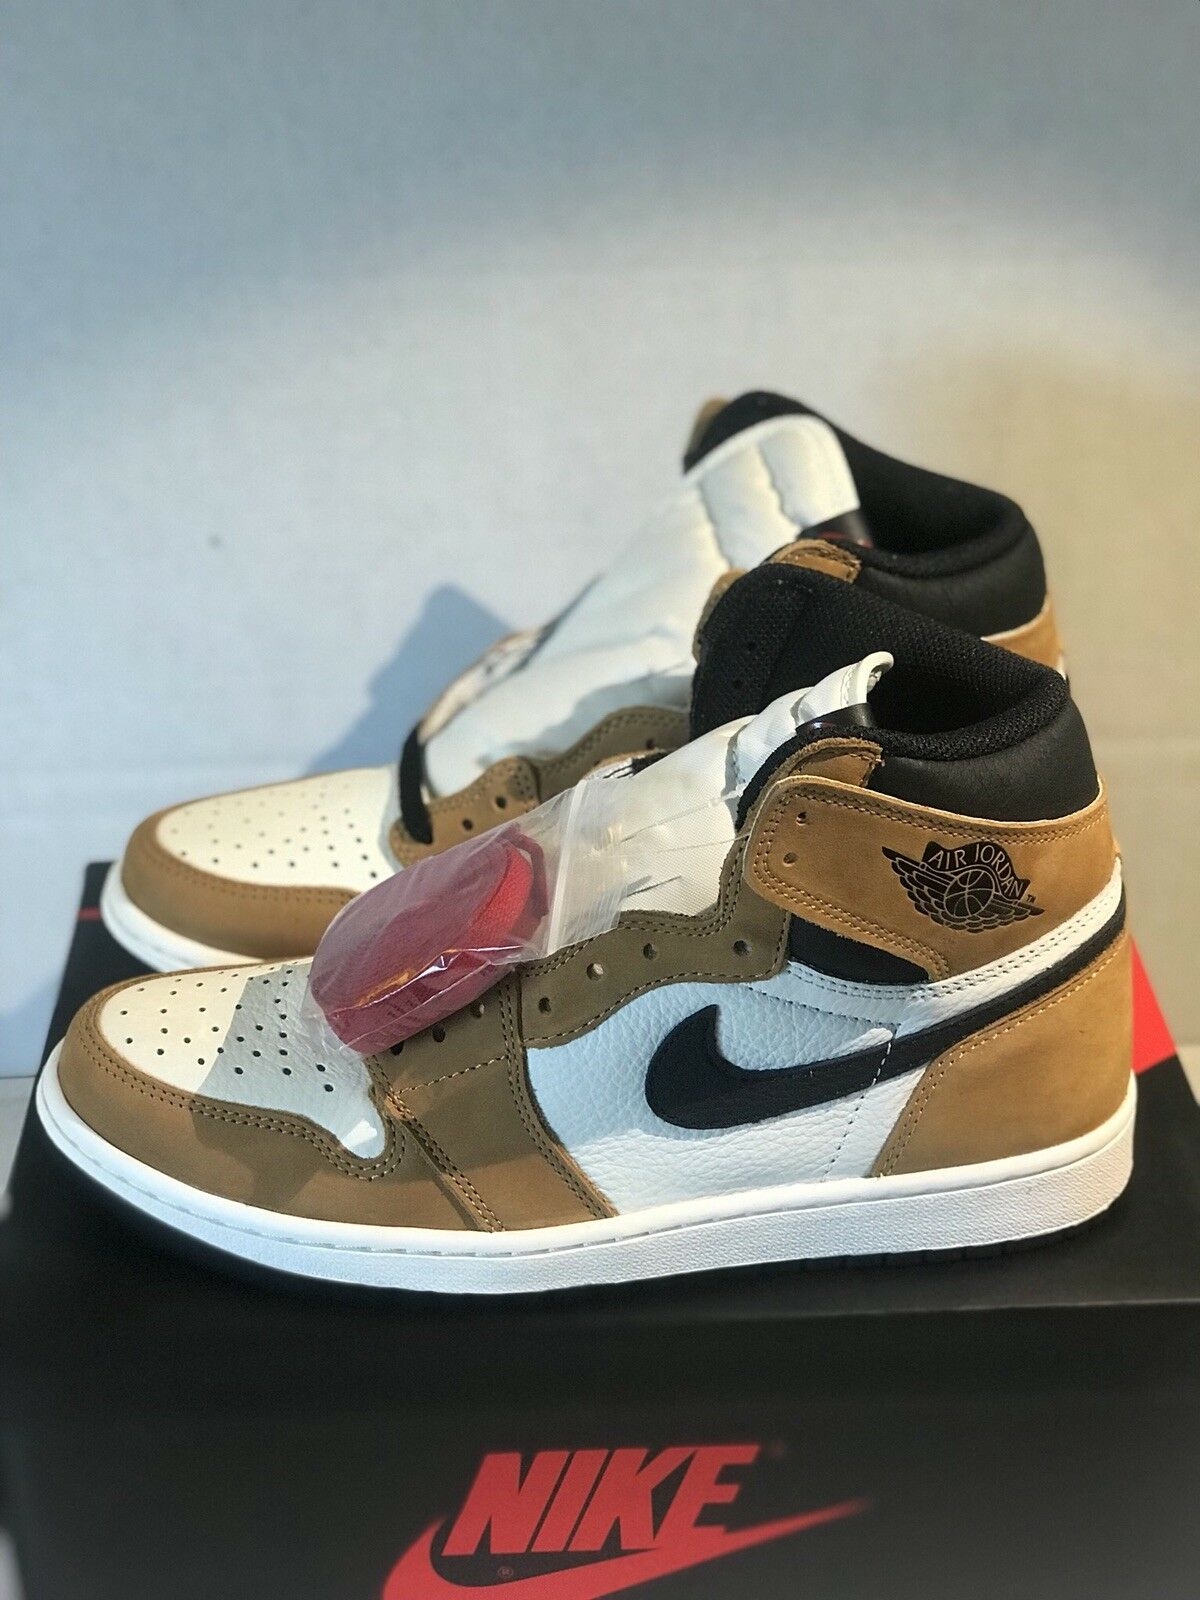 best service 201bb fad4e Air jordan 1 retro high og rookie of the year Size 9